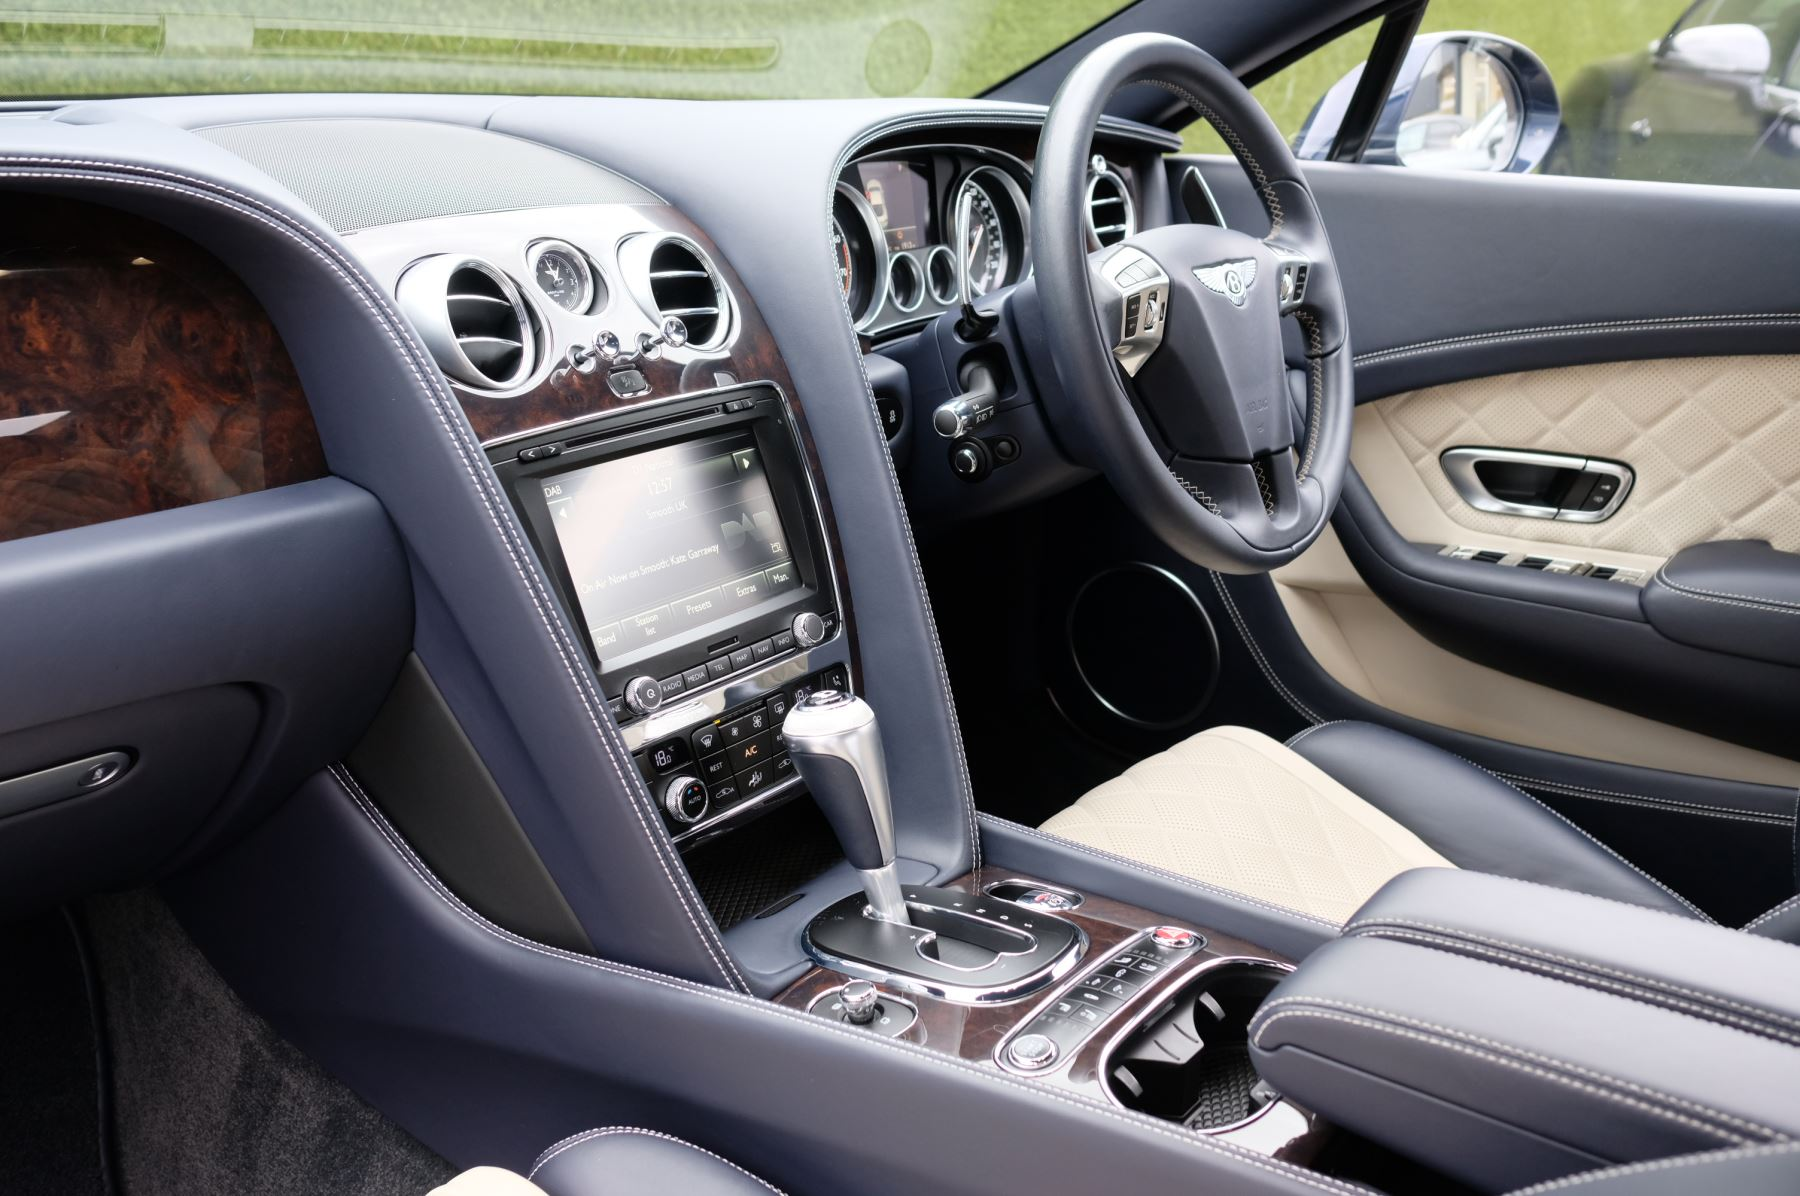 Bentley Continental GT 6.0 W12 [635] Speed - 21 inch Directional Sports Alloys - Ventilated Front Seats with Massage image 11